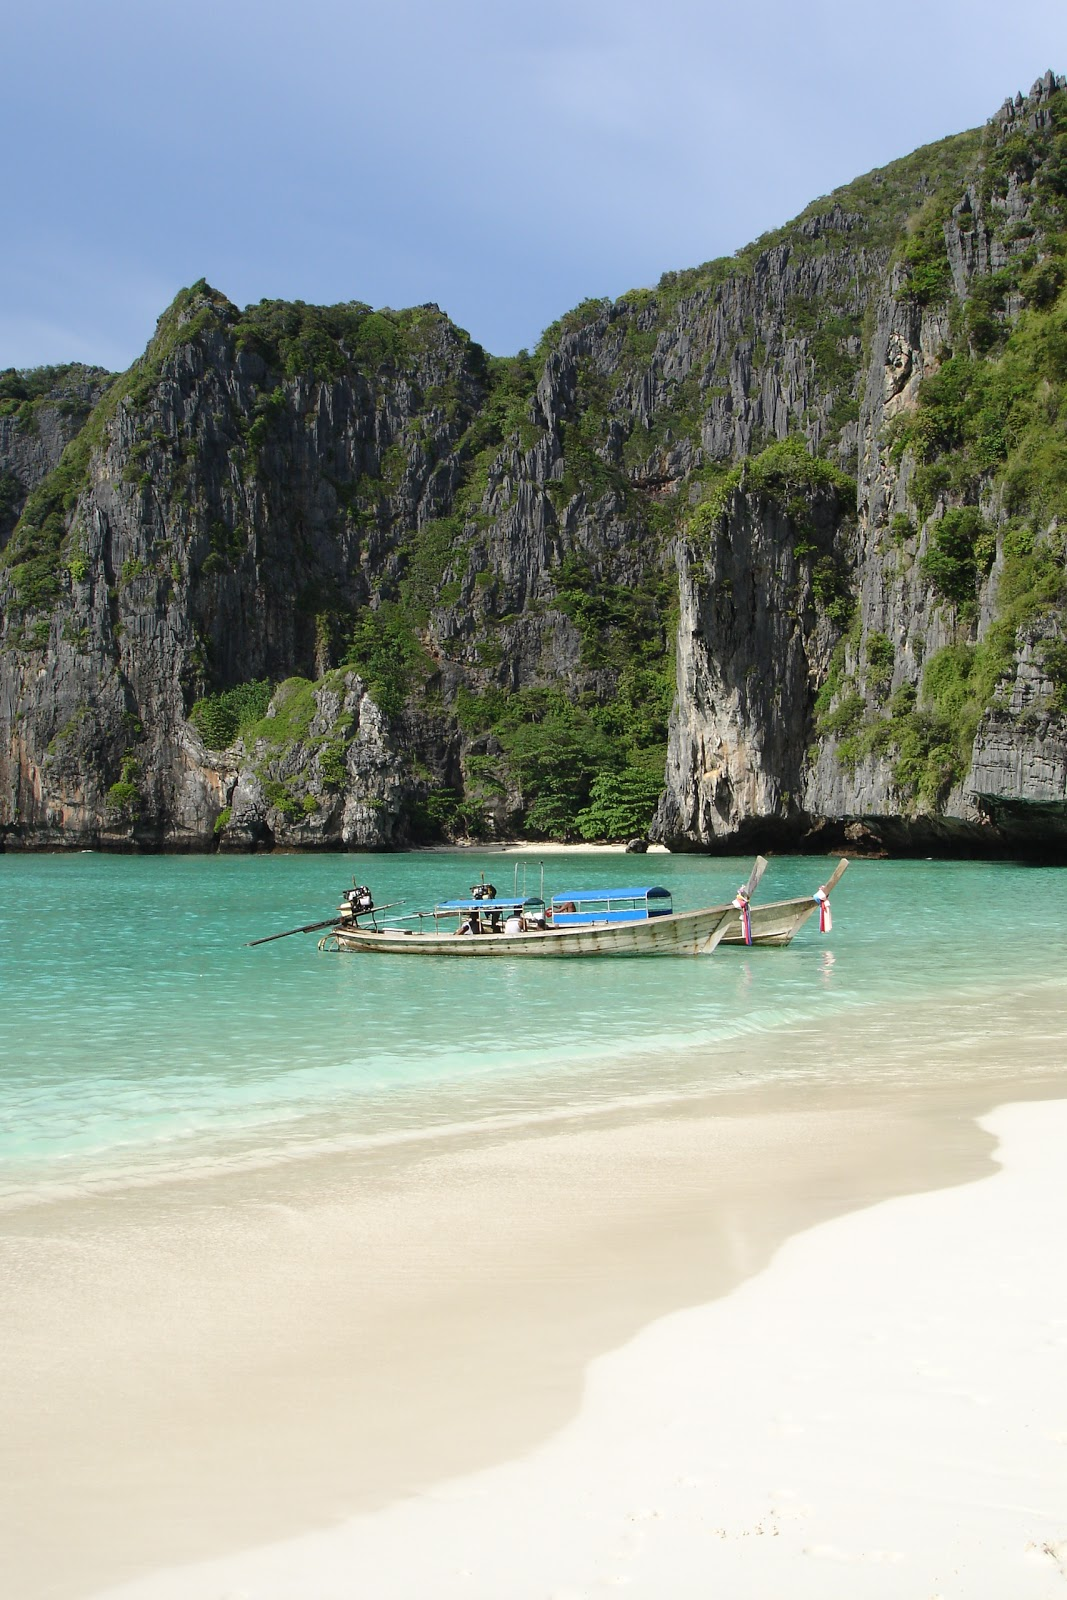 Best Beach Bodies Of 2016: Top 10 Best Beaches: 9.MAYA BEACH